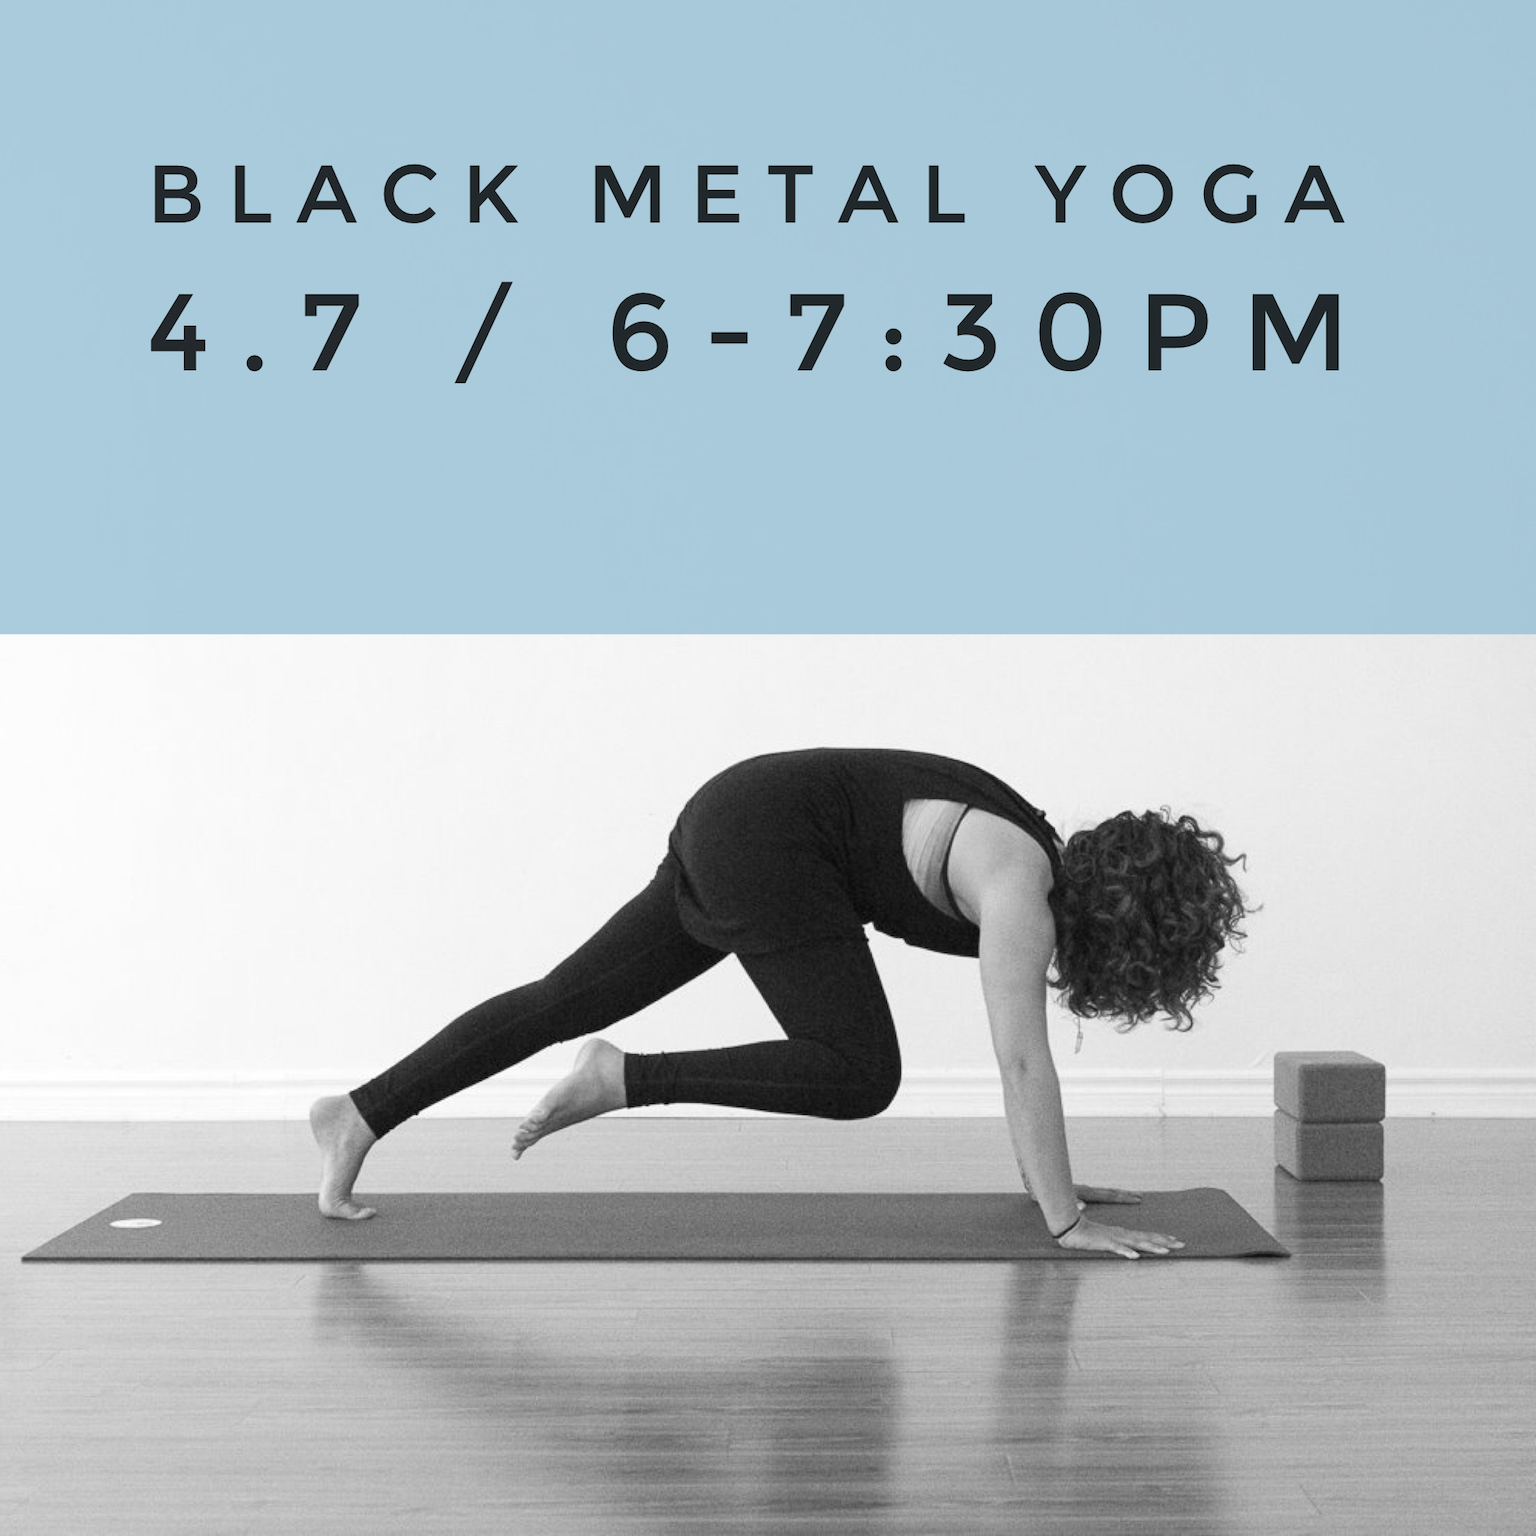 Black Metal Yoga Workshop